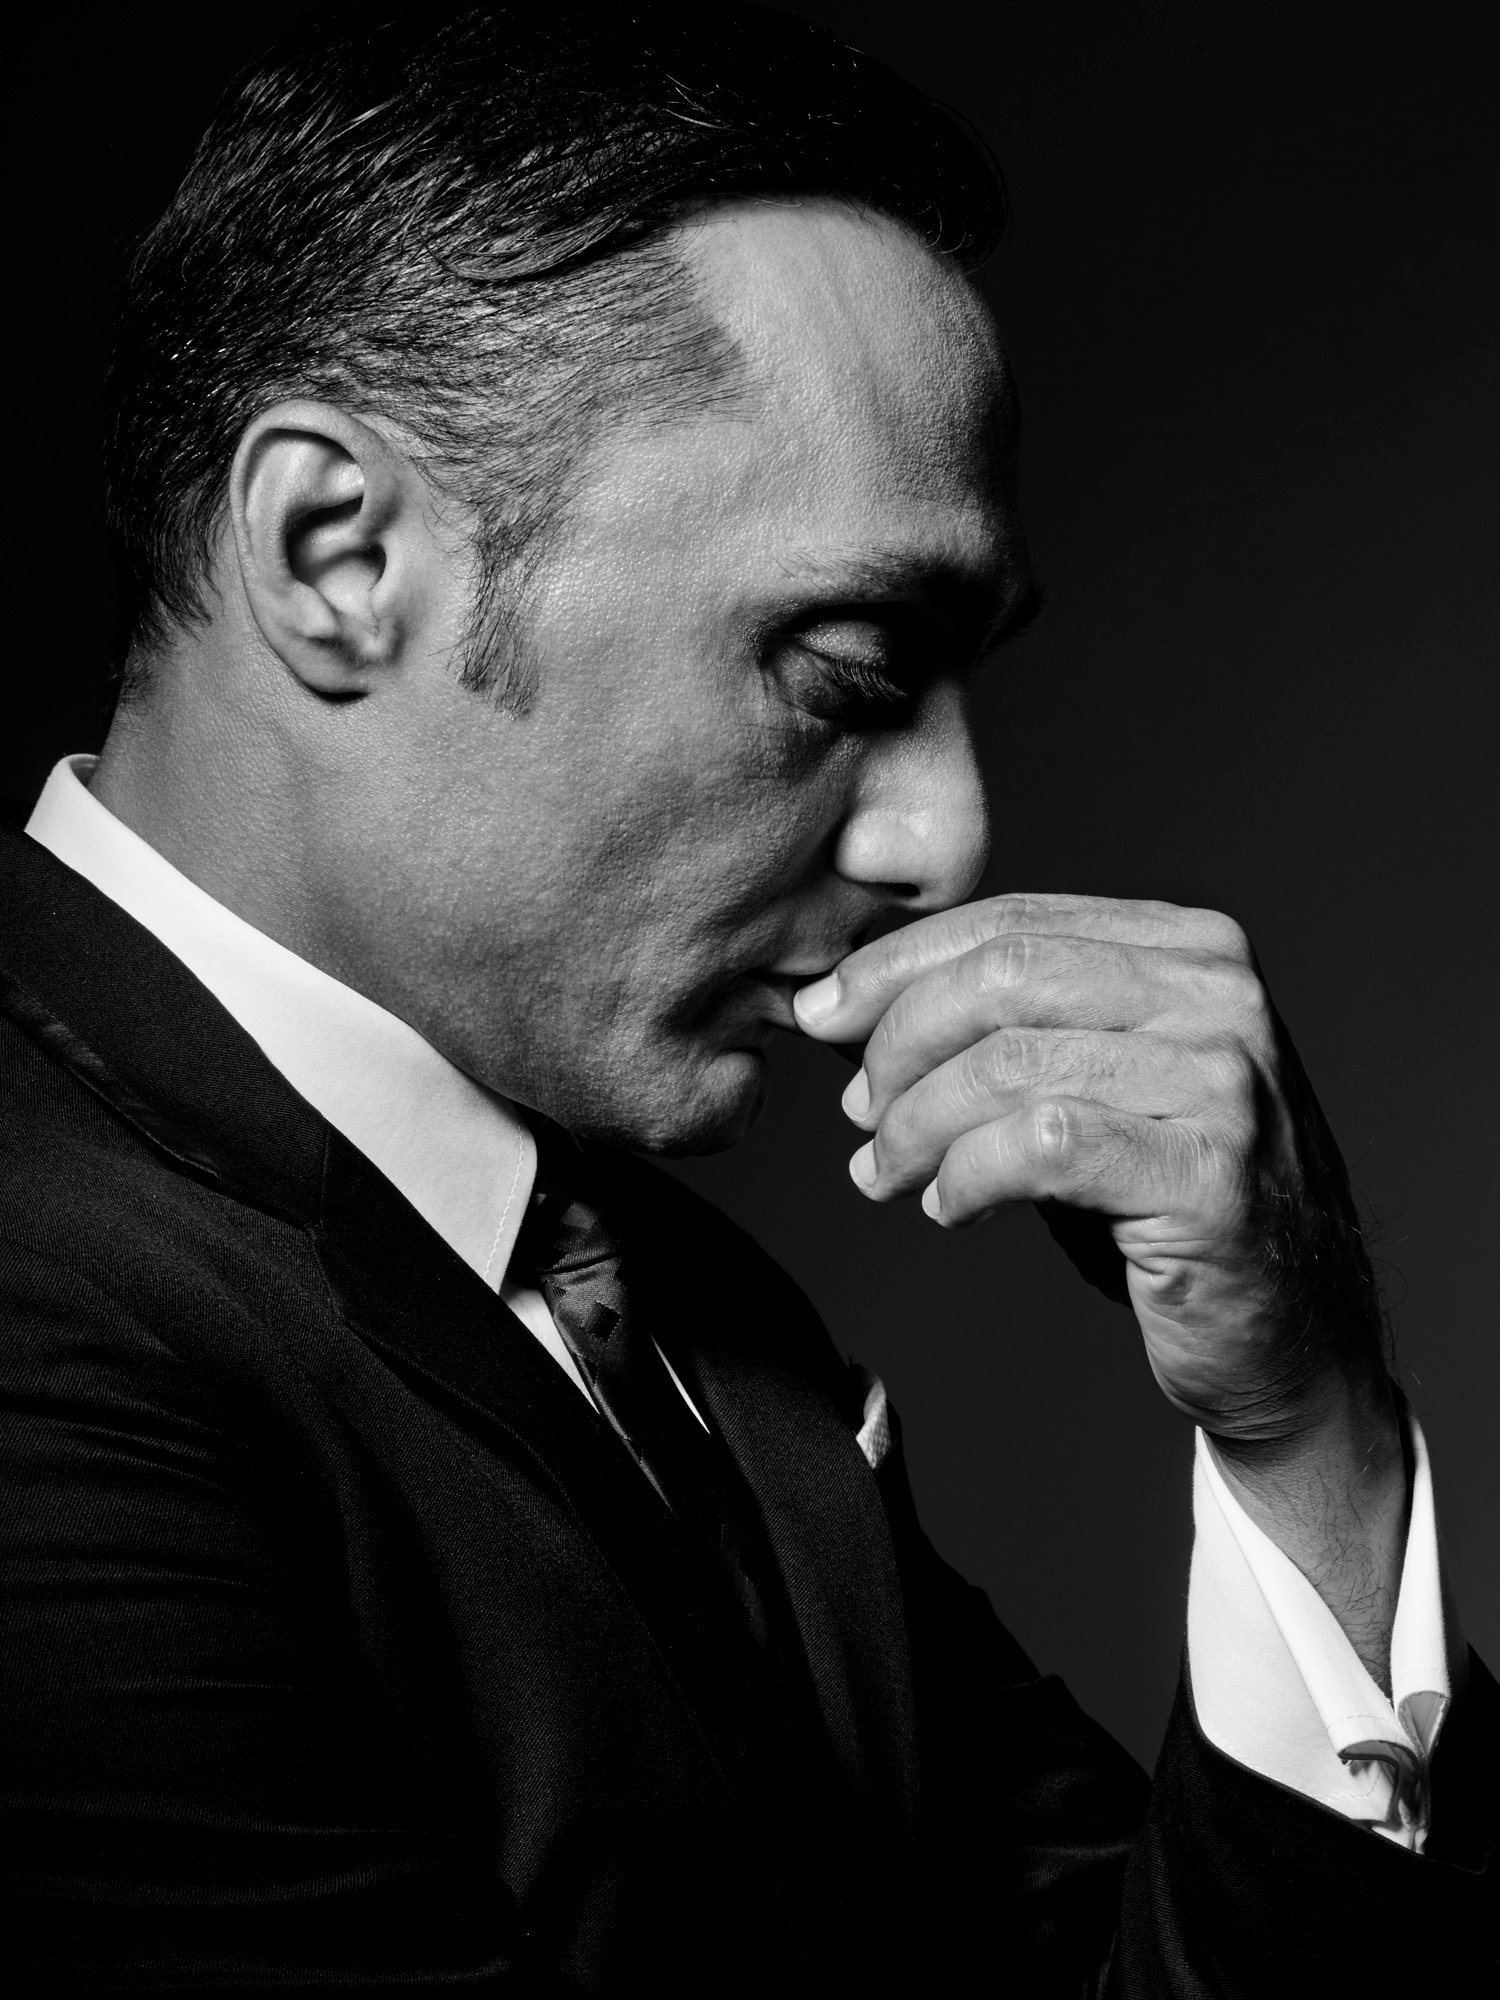 gq rahul bose full6895 copy.jpg